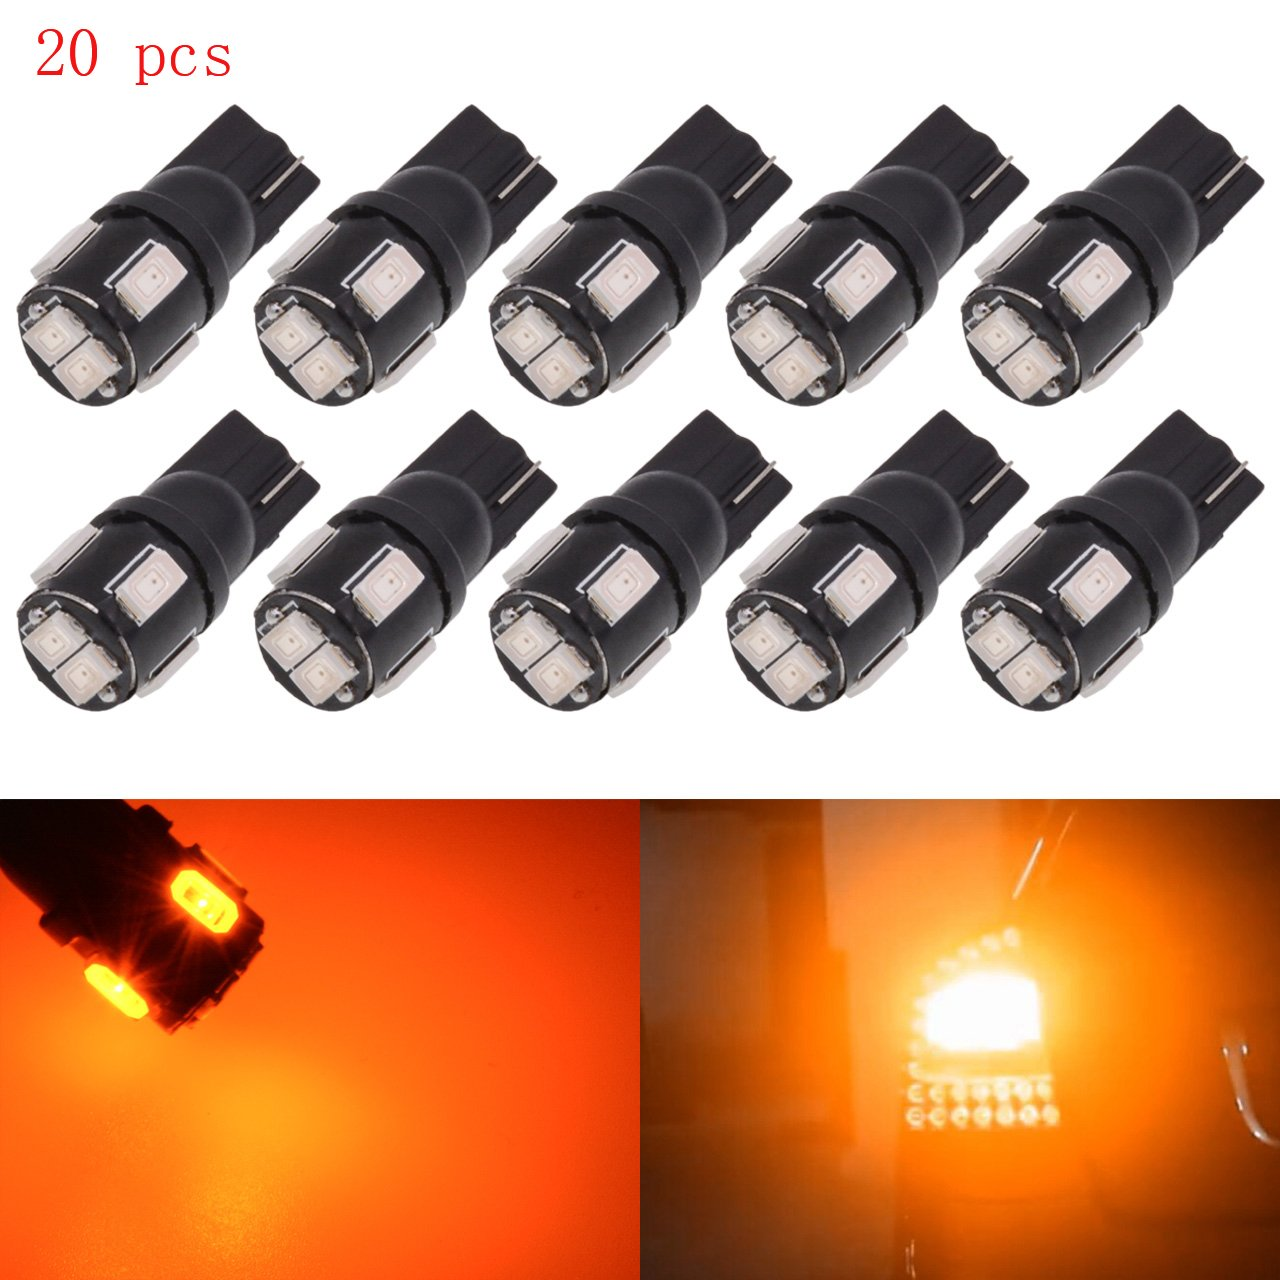 KaTur 10pcs T10 LED Bulb Super Bright 450 Lumens 168 194 2825 175 921 912 LED Light 5630 6SMD Interior Map Lights Trunk Cargo Lights Courtesy Corner Side Marker LEd Lights 2W 12V 6000K Red